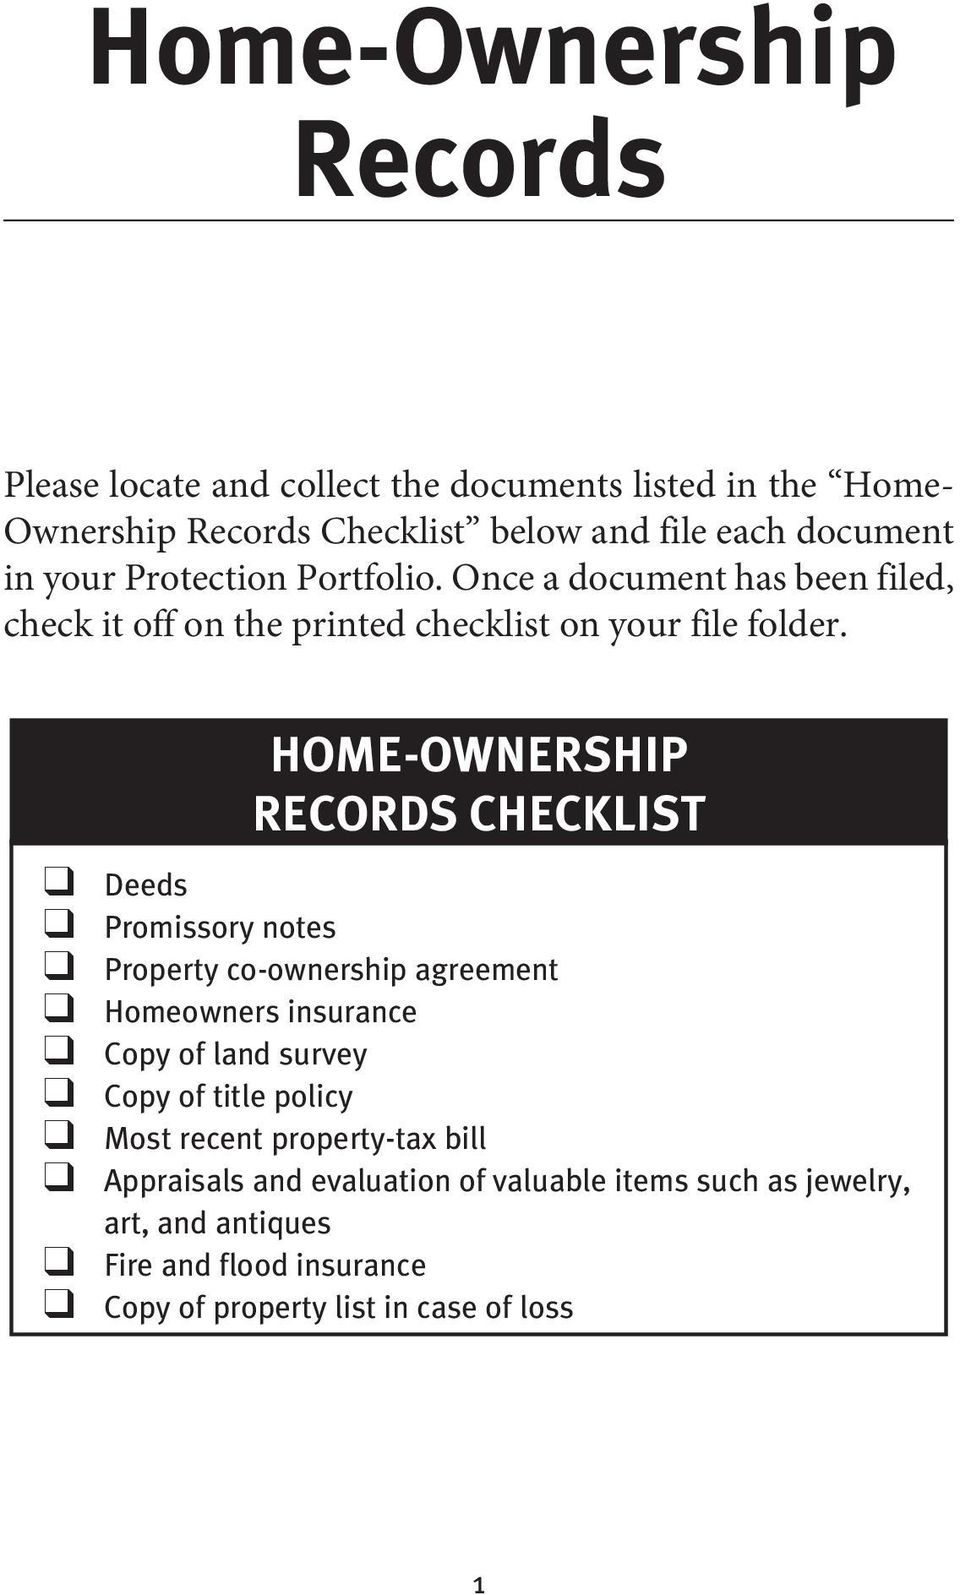 Home-Ownership Records Checklist q Deeds q Promissory notes q Property co-ownership agreement q Homeowners insurance q Copy of land survey q Copy of